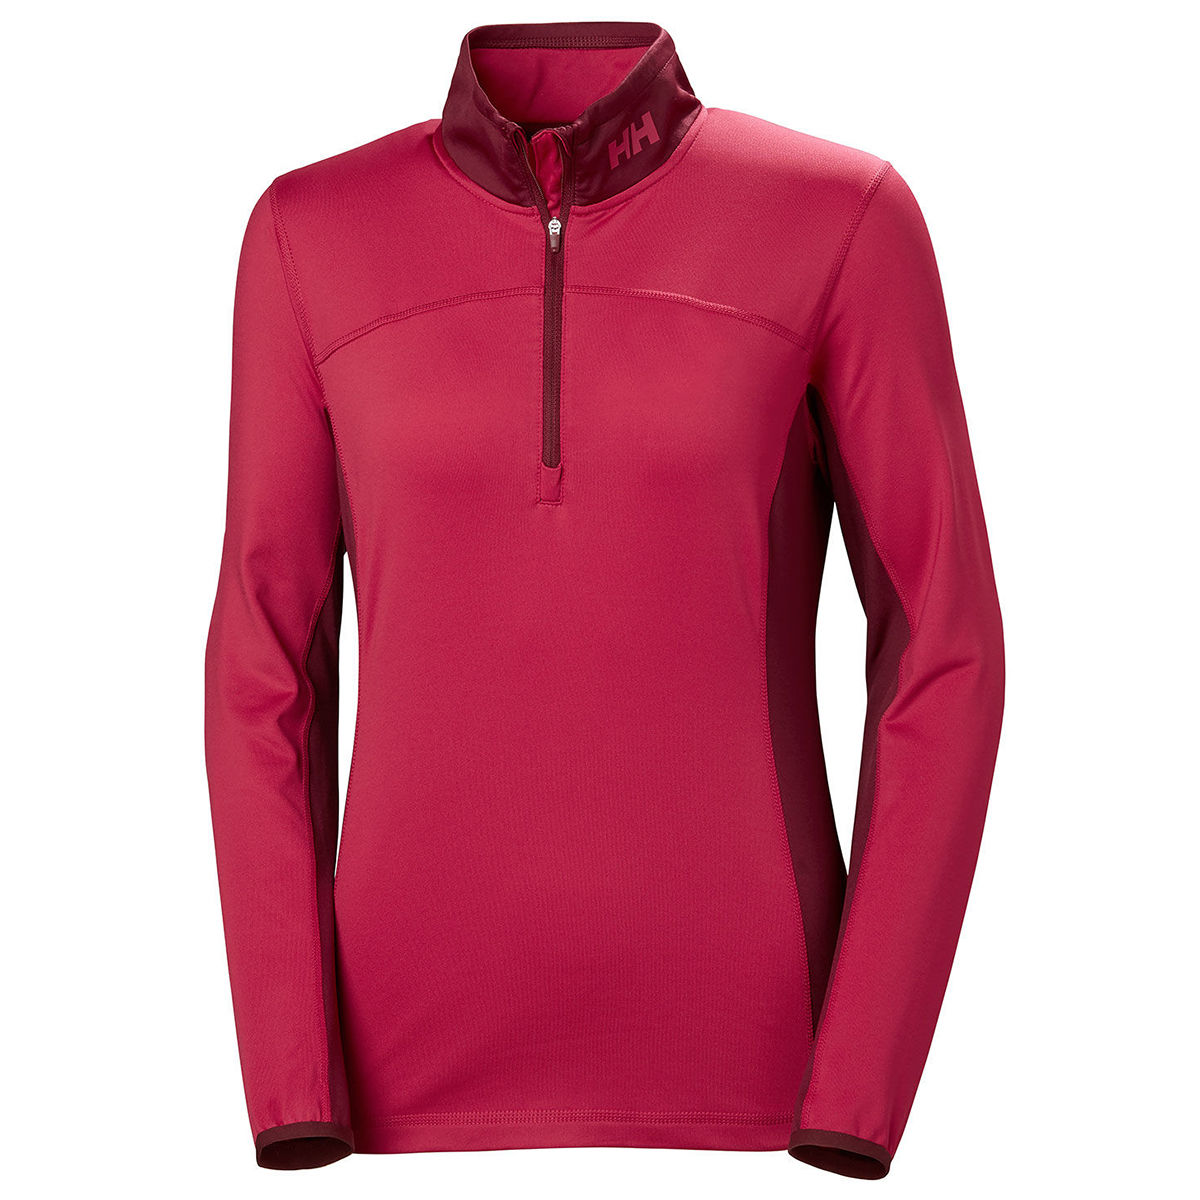 photo: Helly Hansen Women's Phantom 1/2 Zip 20 fleece top